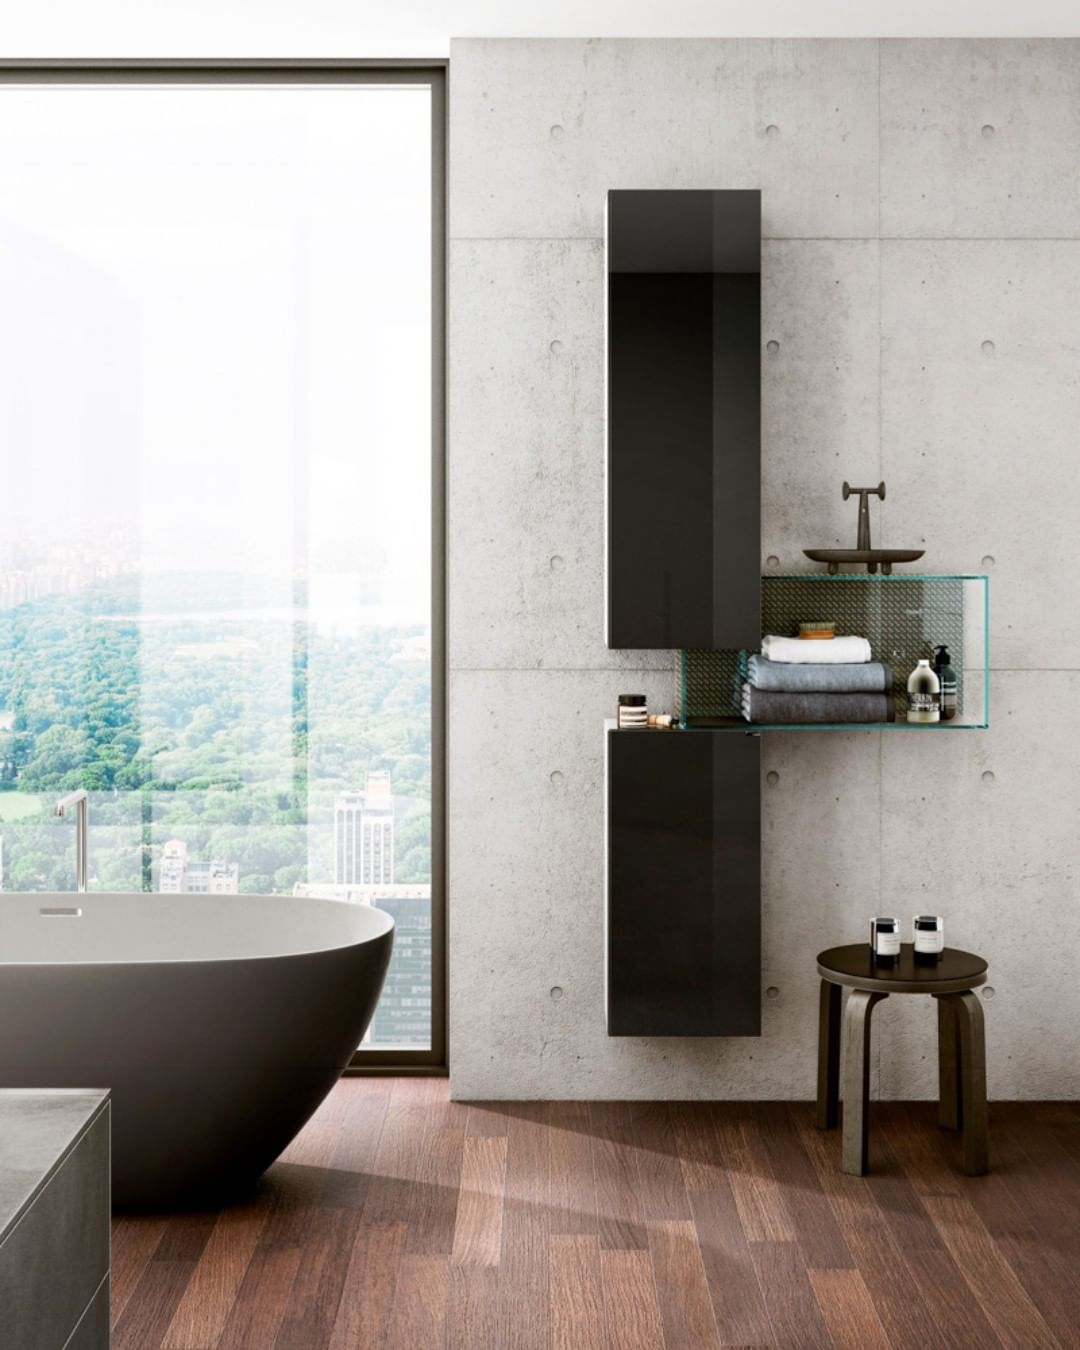 Surfaces and materials create innovative...